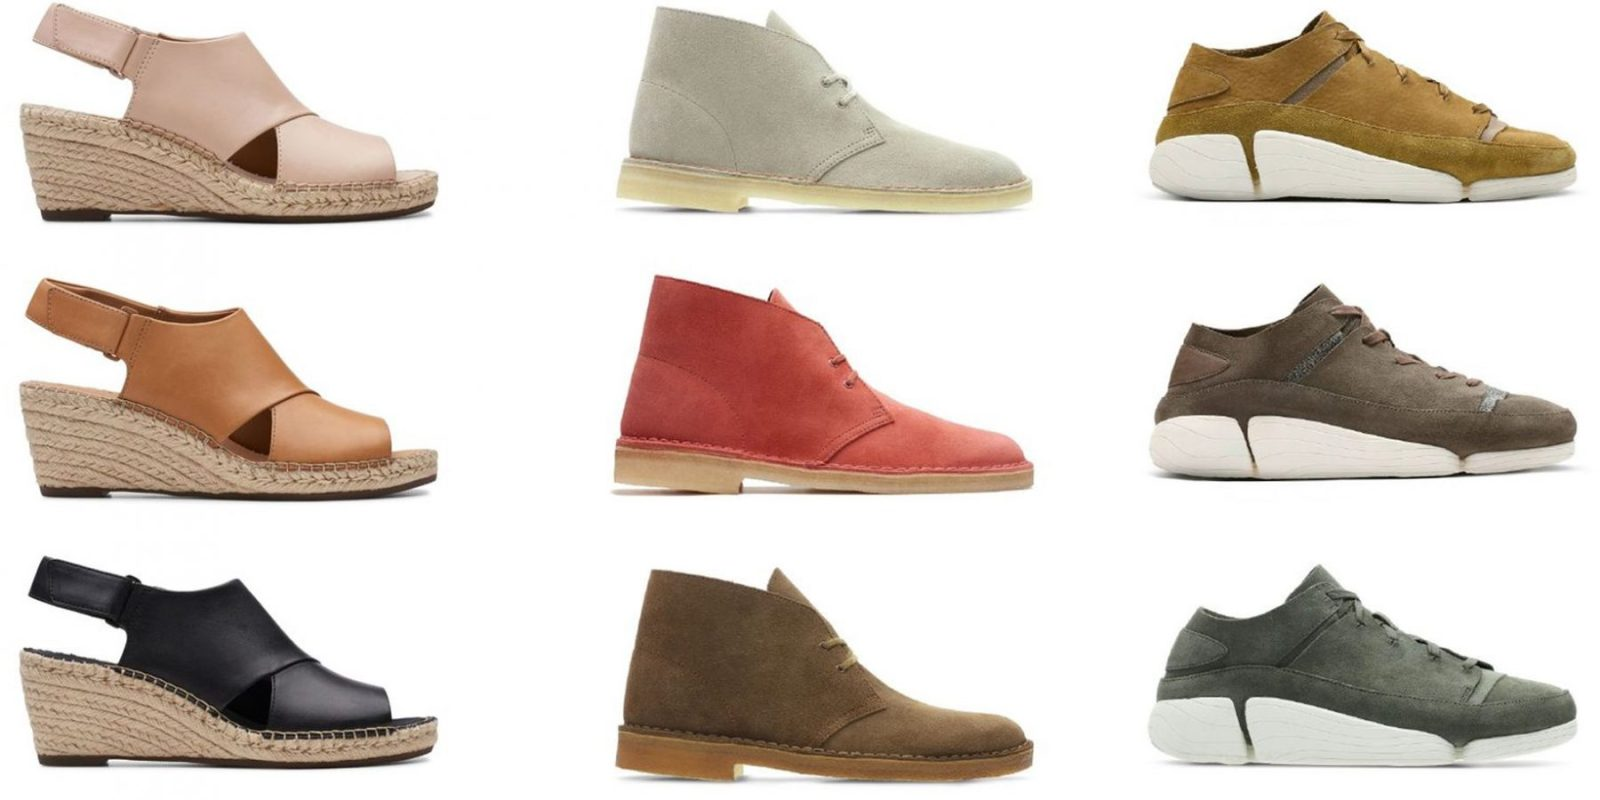 bccbcae1798 The Clarks Big Spring Sale cuts 20% off sitewide with dress shoes, sandals,  sneakers & more